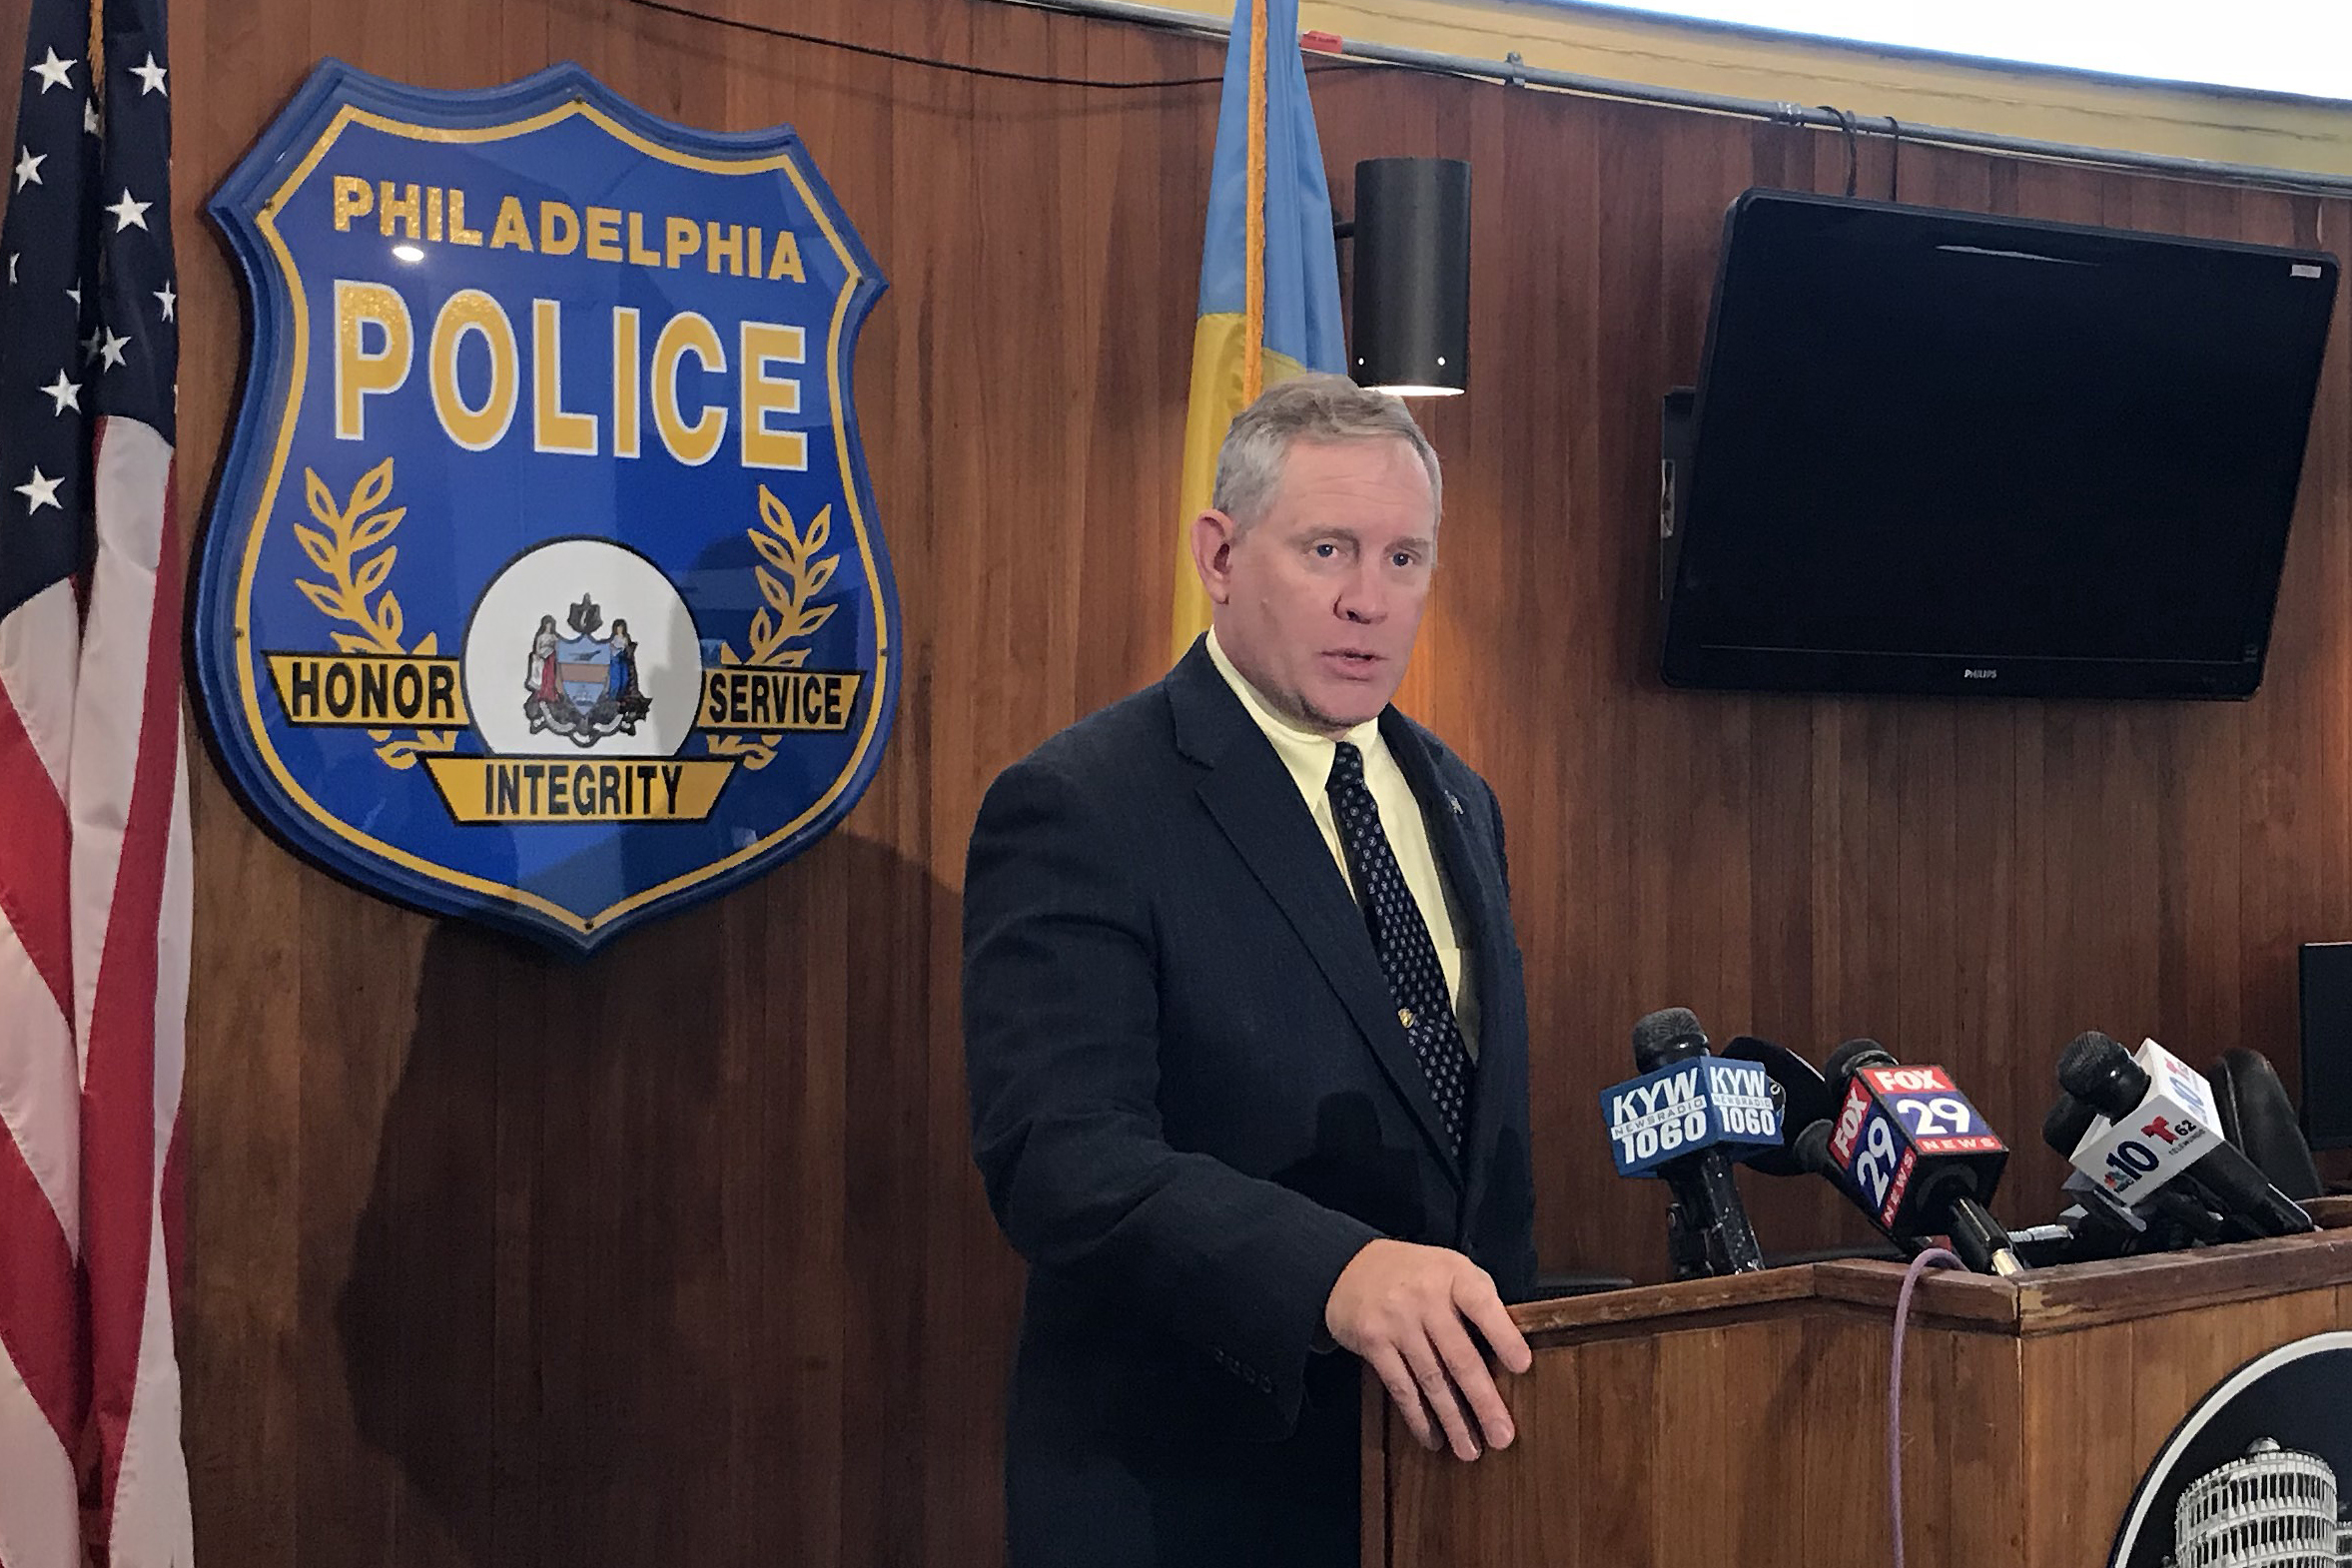 Philadelphia Police Capt. John Ryan of the Homicide Unit speaks during a news conference at the Police Administration building at 8th and Race Streets in Philadelphia on Friday, July 13, 2018. He gave details on the stabbing death of Sean Schellenger, 37, of Point Breeze.